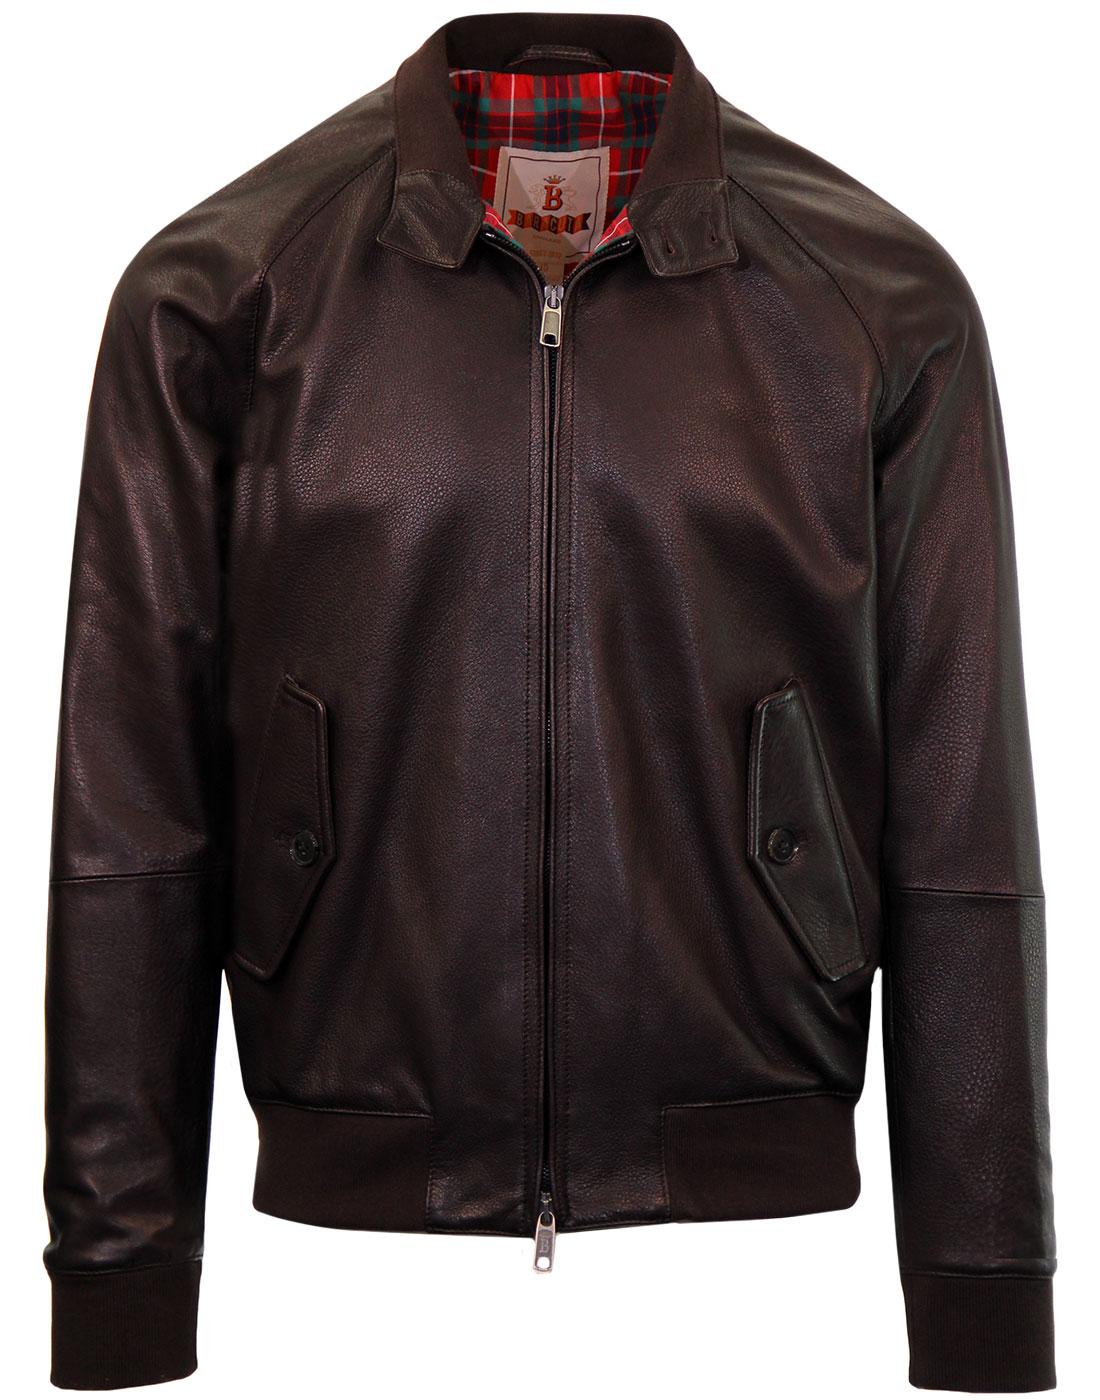 BARACUTA G9 Italian Leather Harrington Jacket (DB)